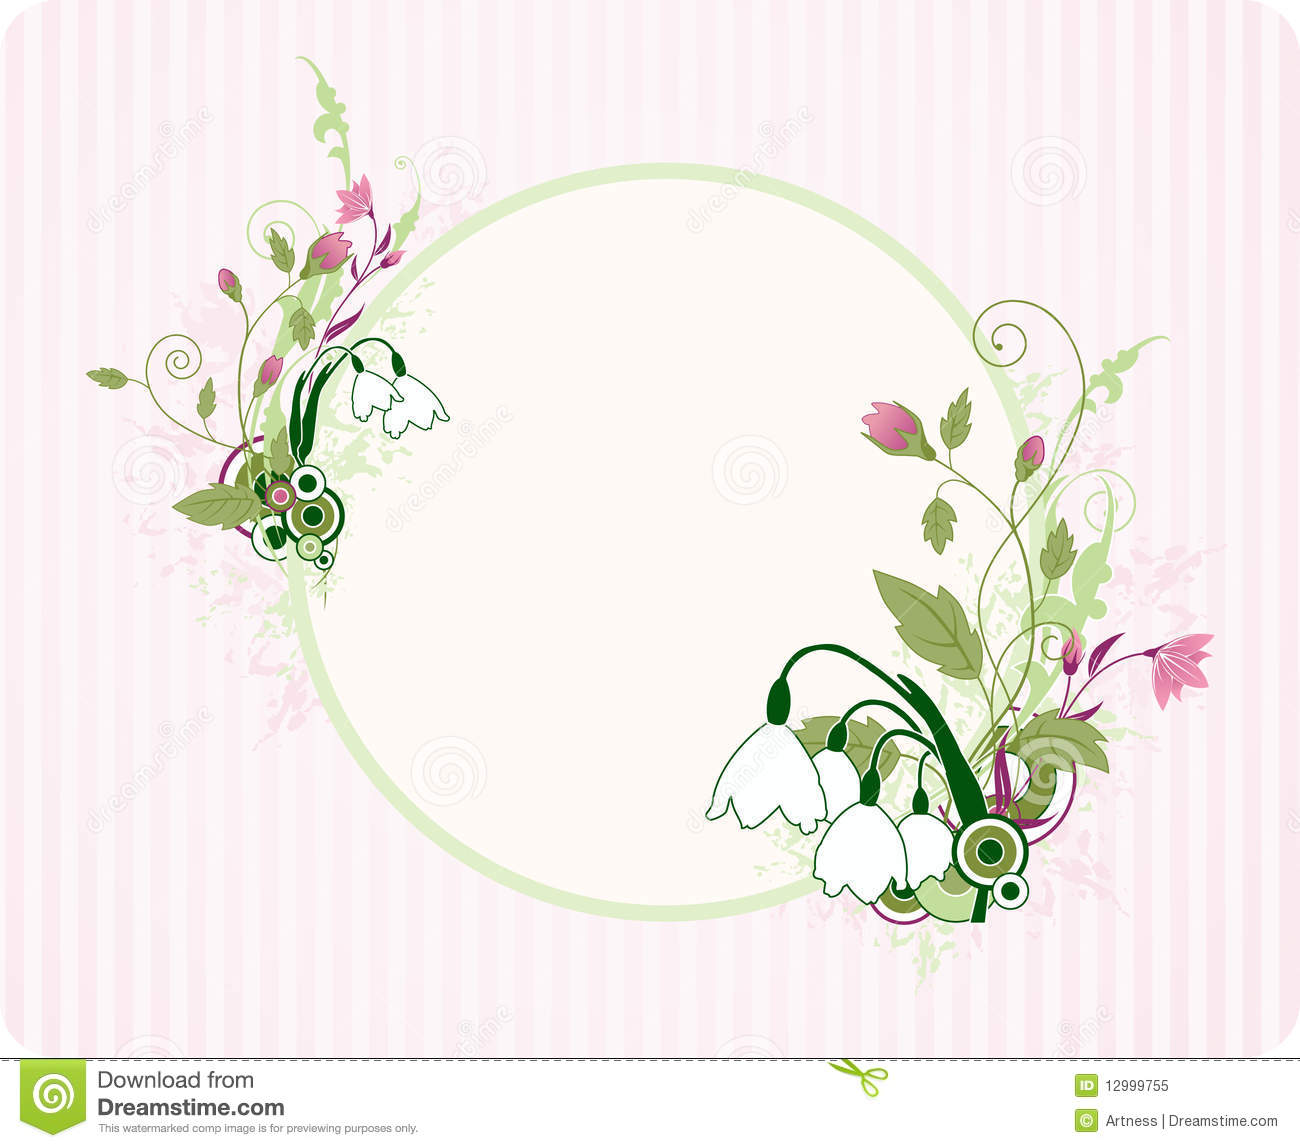 House Doctor Ornament Dreams Round Banner With Floral Ornament Royalty Free Stock Photo